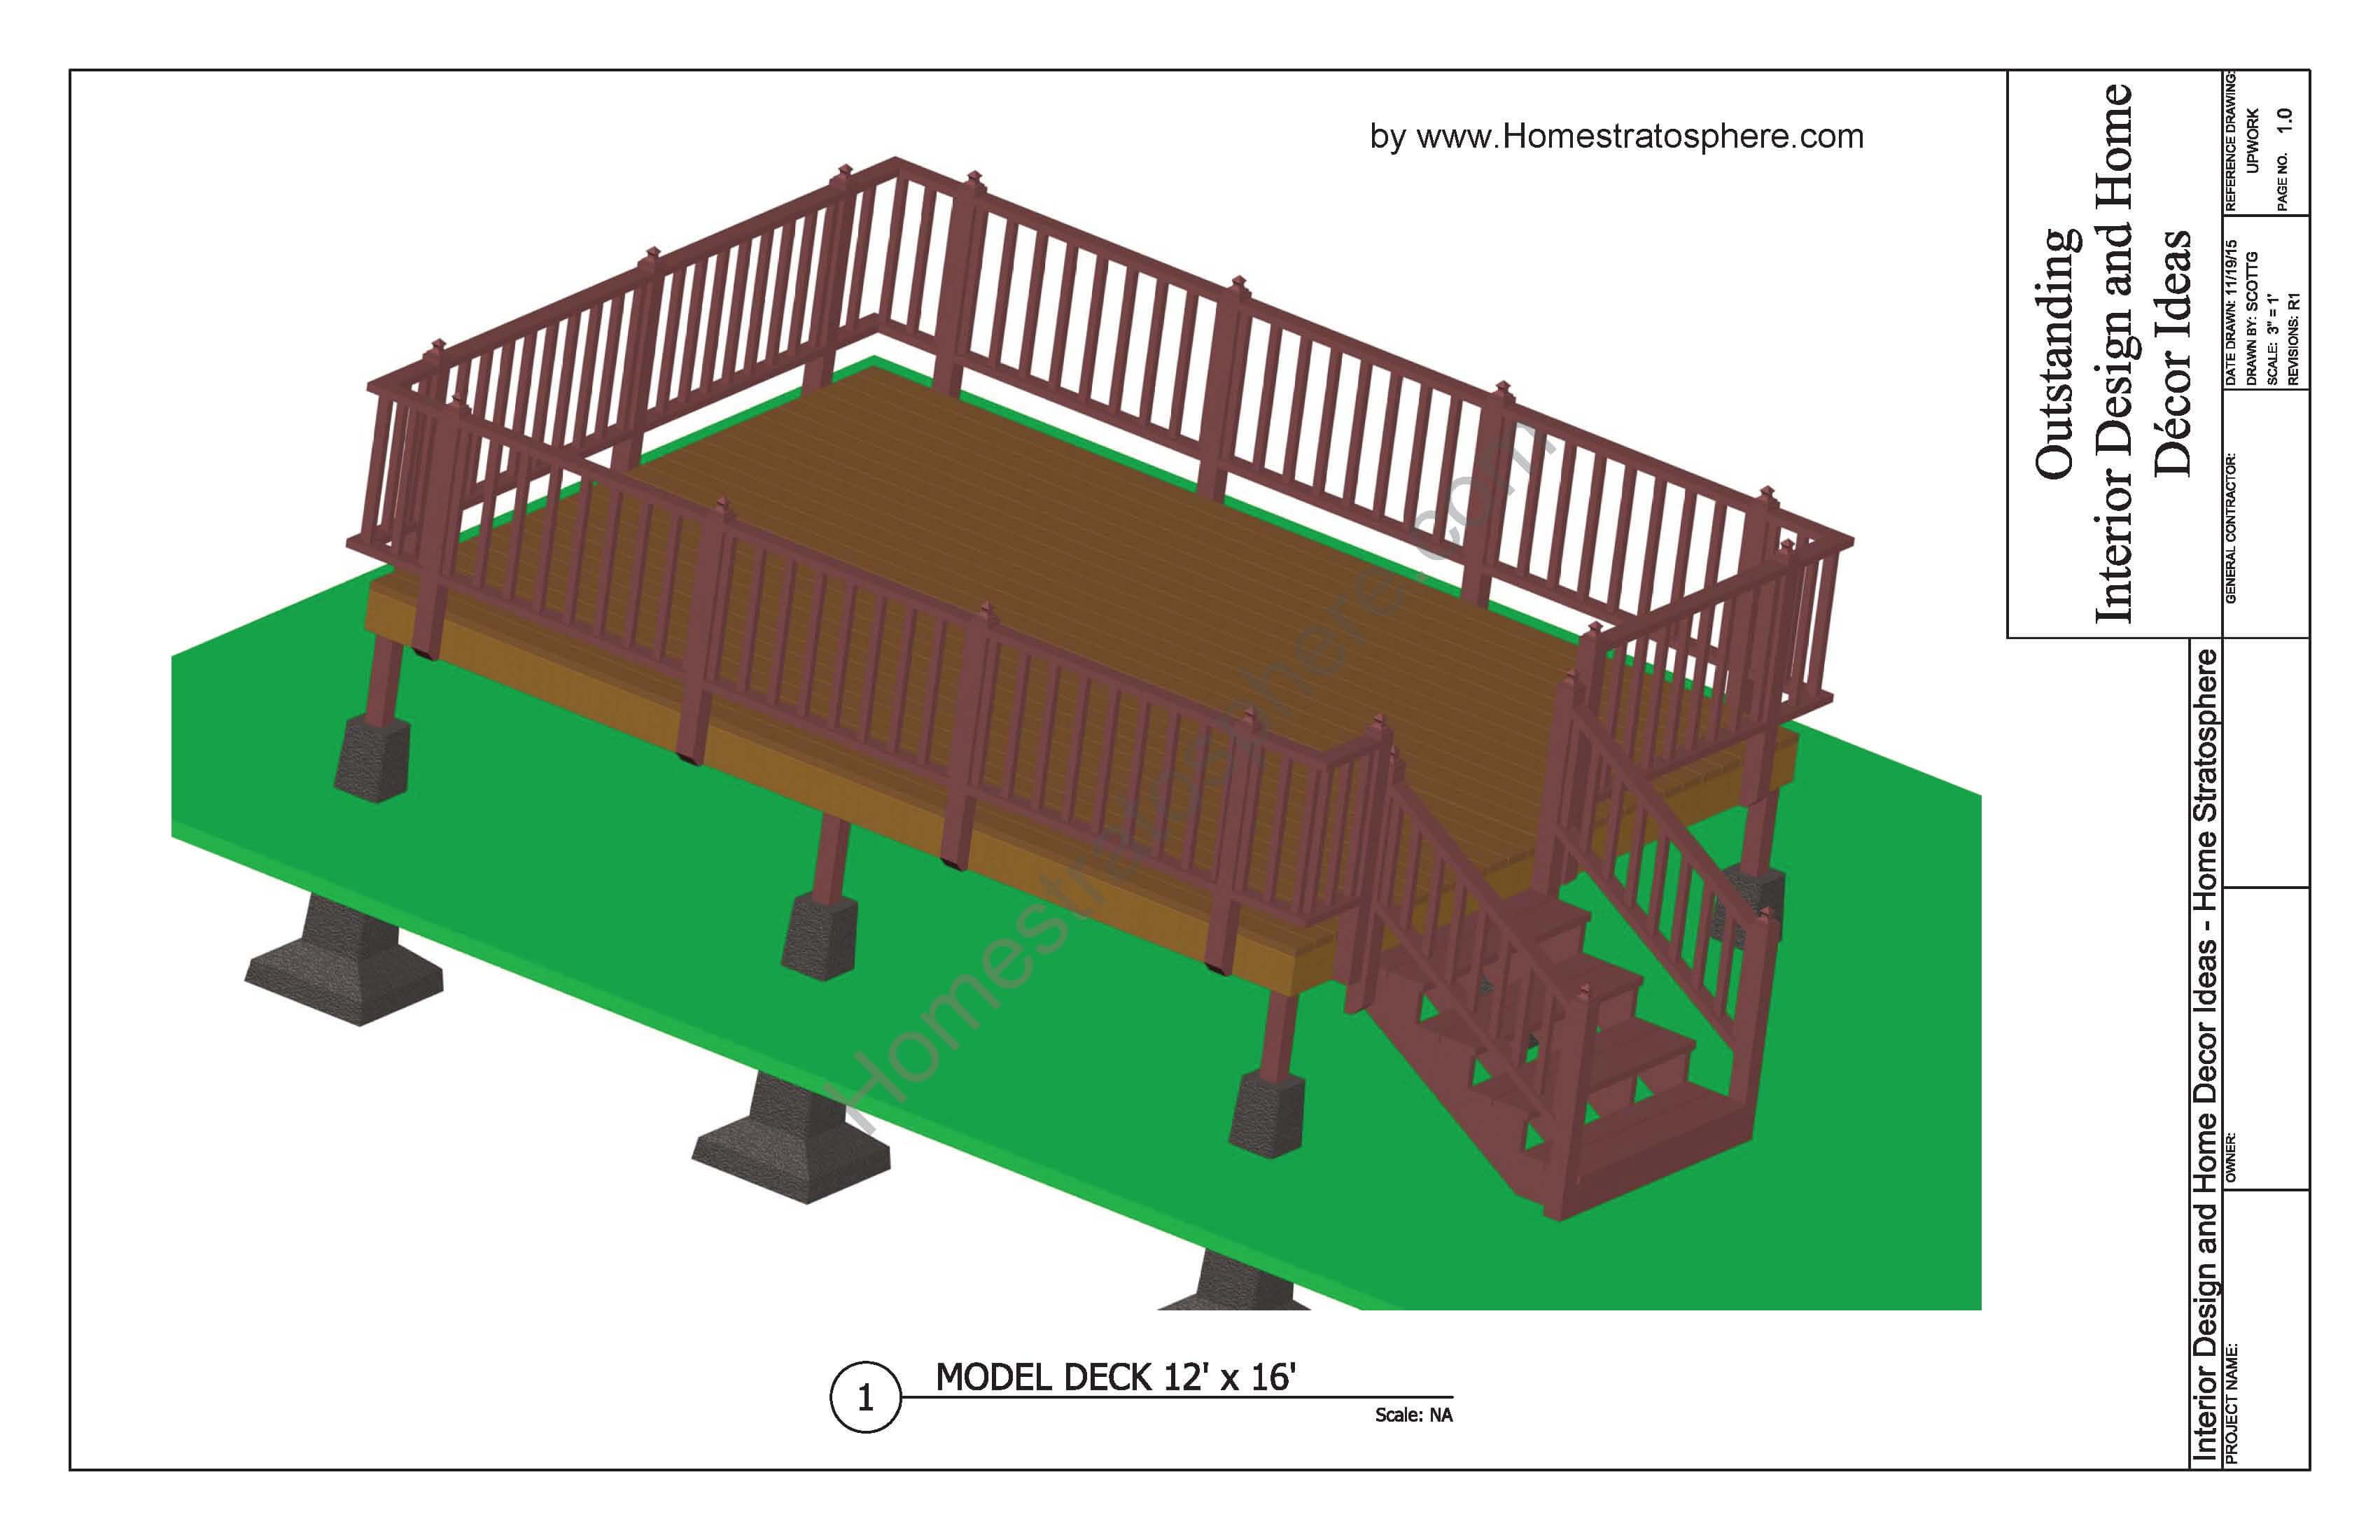 Free 12 X 16 Deck Plan Blueprint With Pdf Document Download This Picture Shows A Simple Schematic Of Beam Bridge It Is 12x16